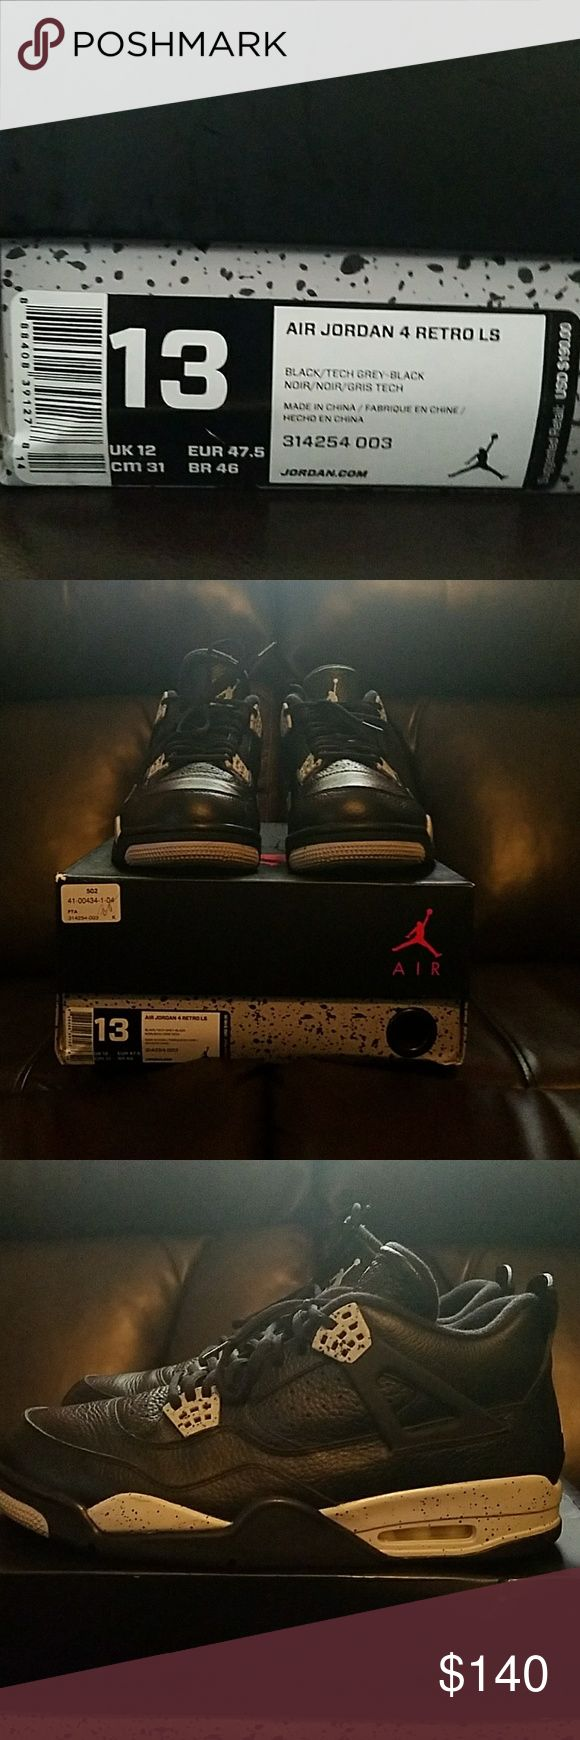 "AIR JORDAN 4 RETRO LS ""OREO"" Authentic size 13 Oreo retro 4 in awesome condition. All of my shoes are authentic. Hard to find in this size at this price and condition. I'm not looking for trades. Jordan Shoes Sneakers"